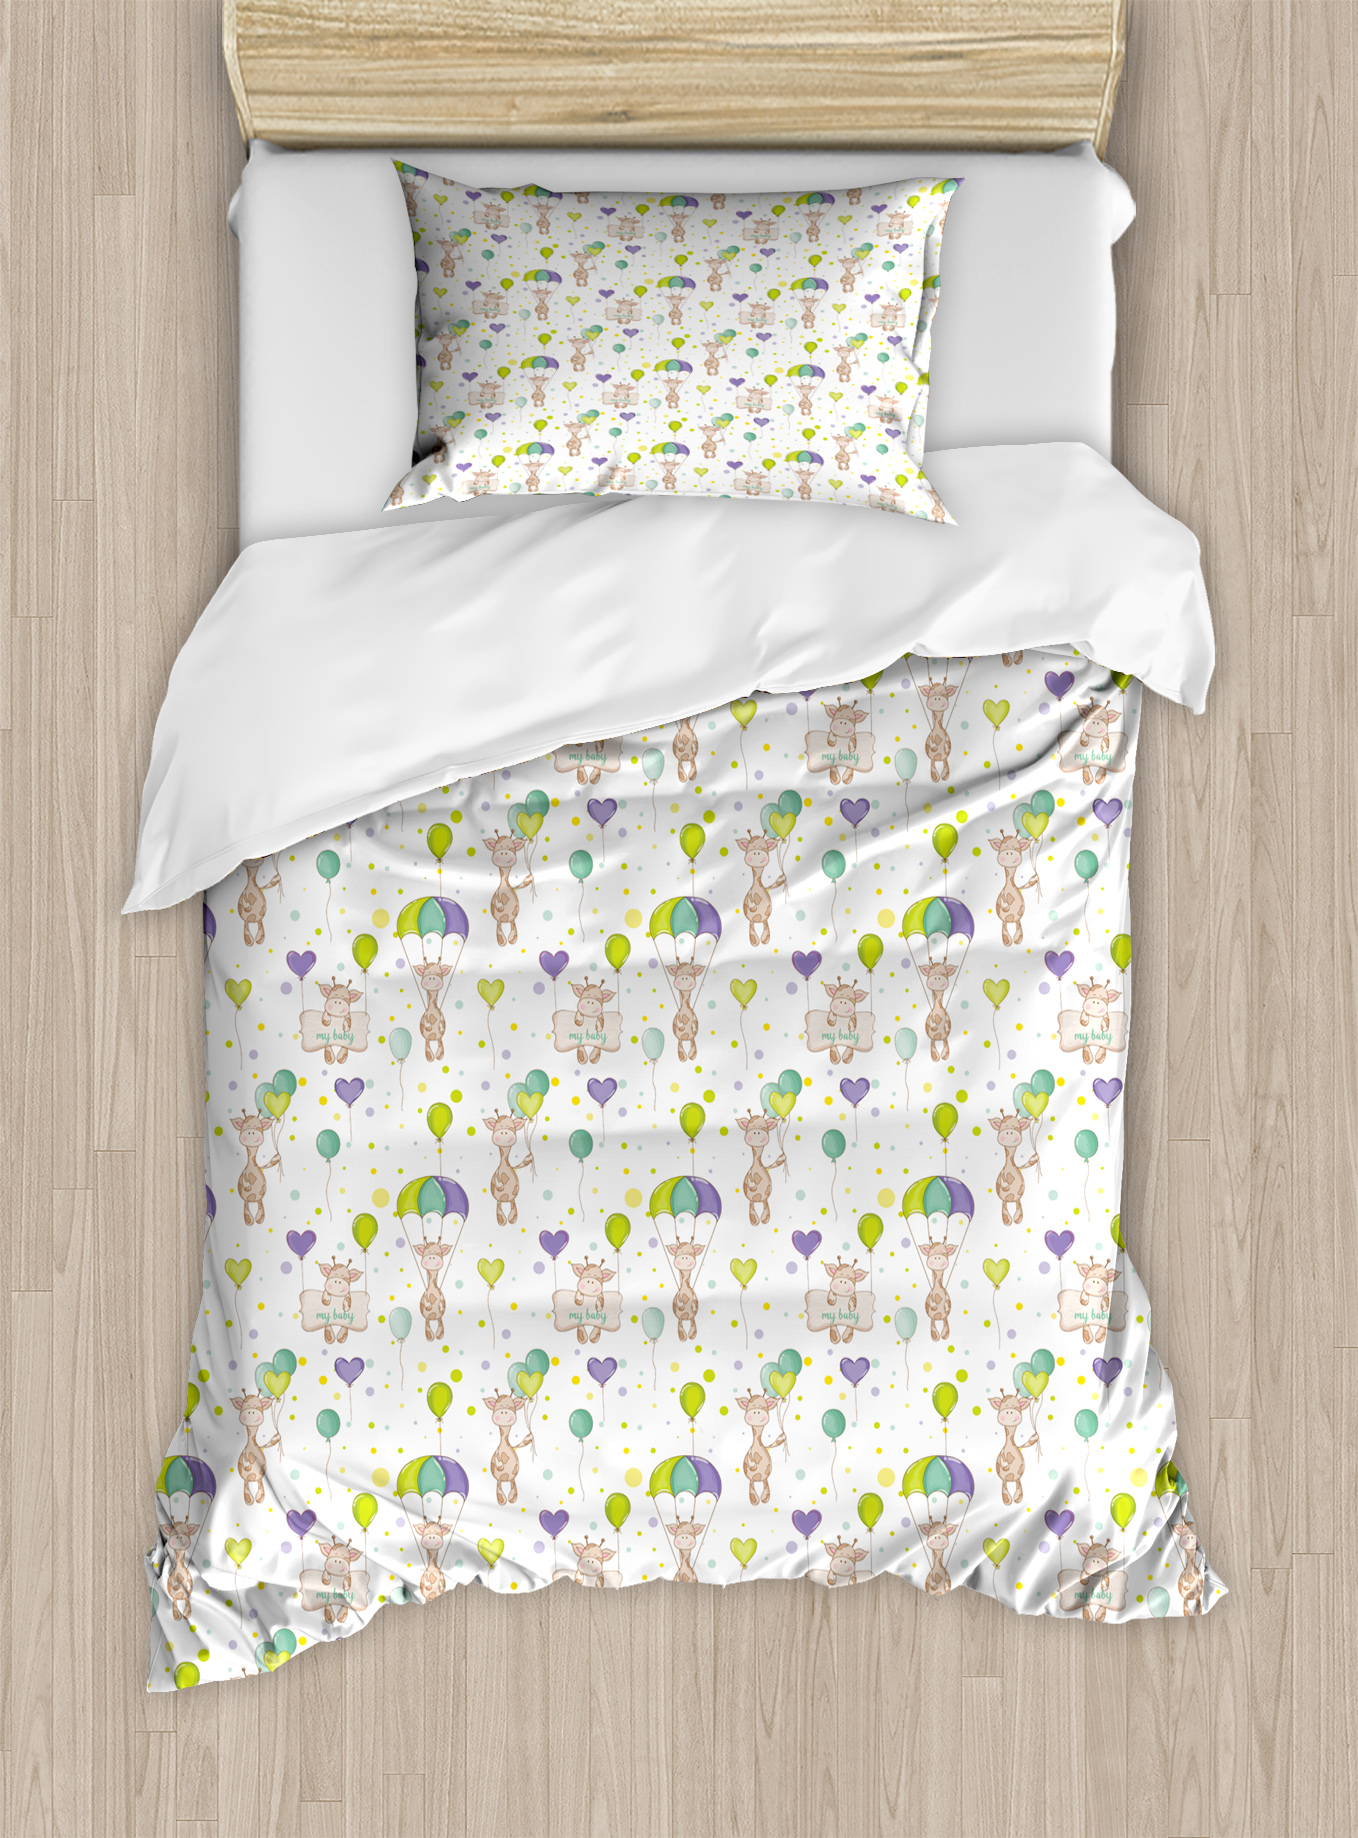 Baby Duvet Cover Set, Infant Giraffes Flying with Balloons with Polka Dotted Background Newborn Love Hearts,... by Kozmos